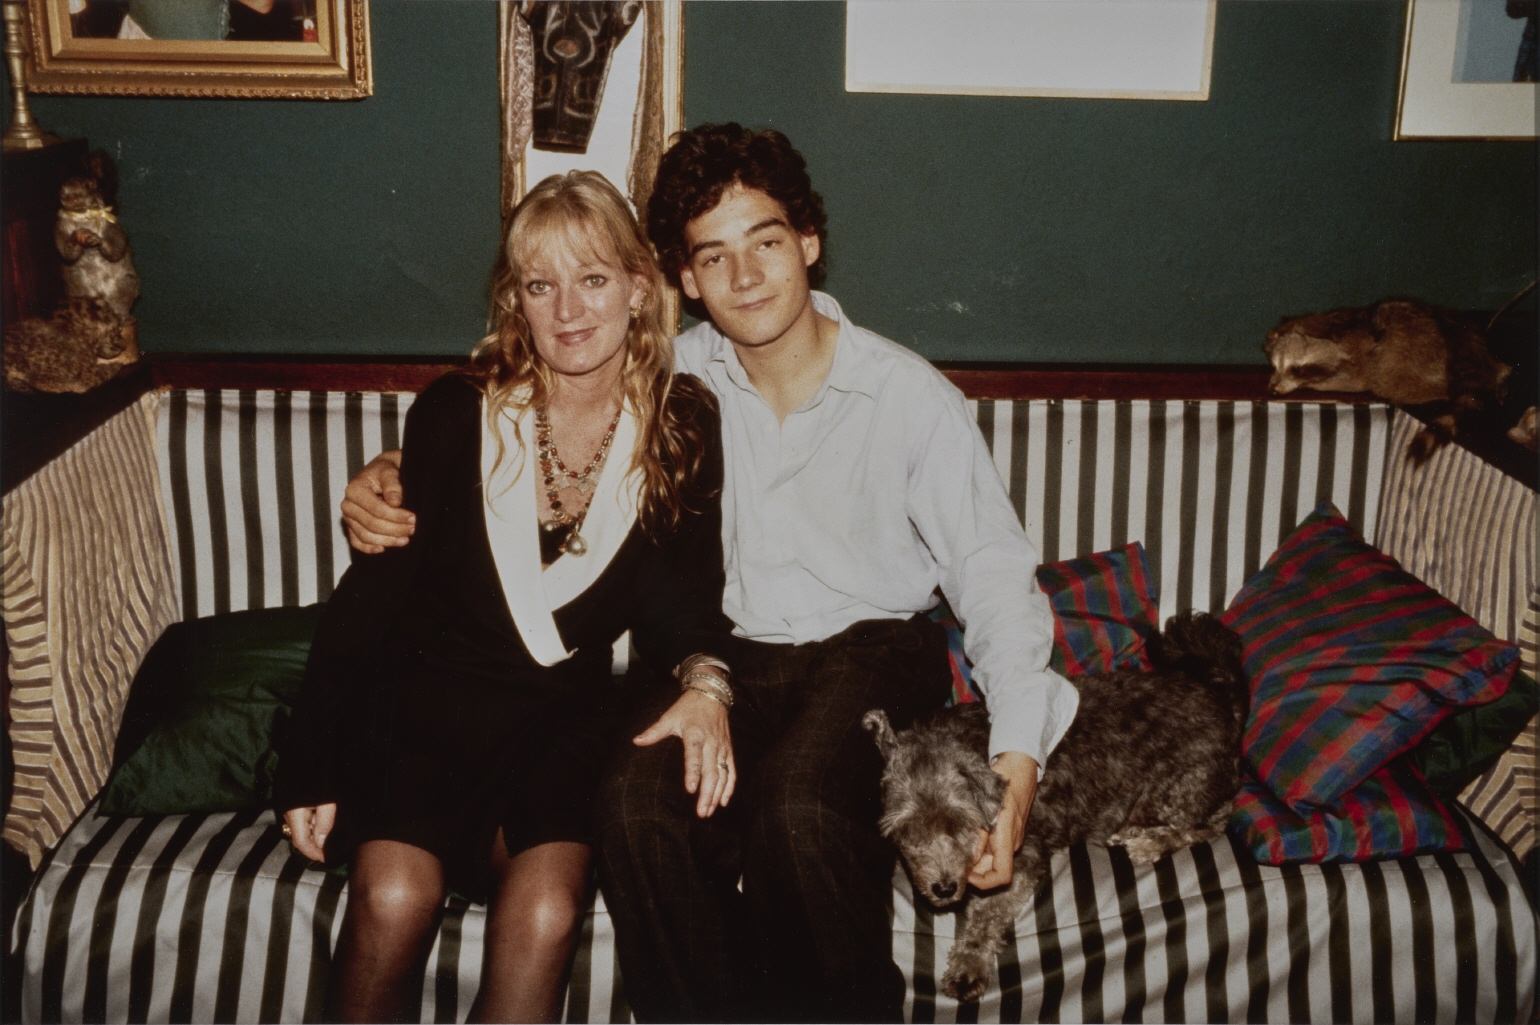 Cookie and Max, NYC, Sept., 1989